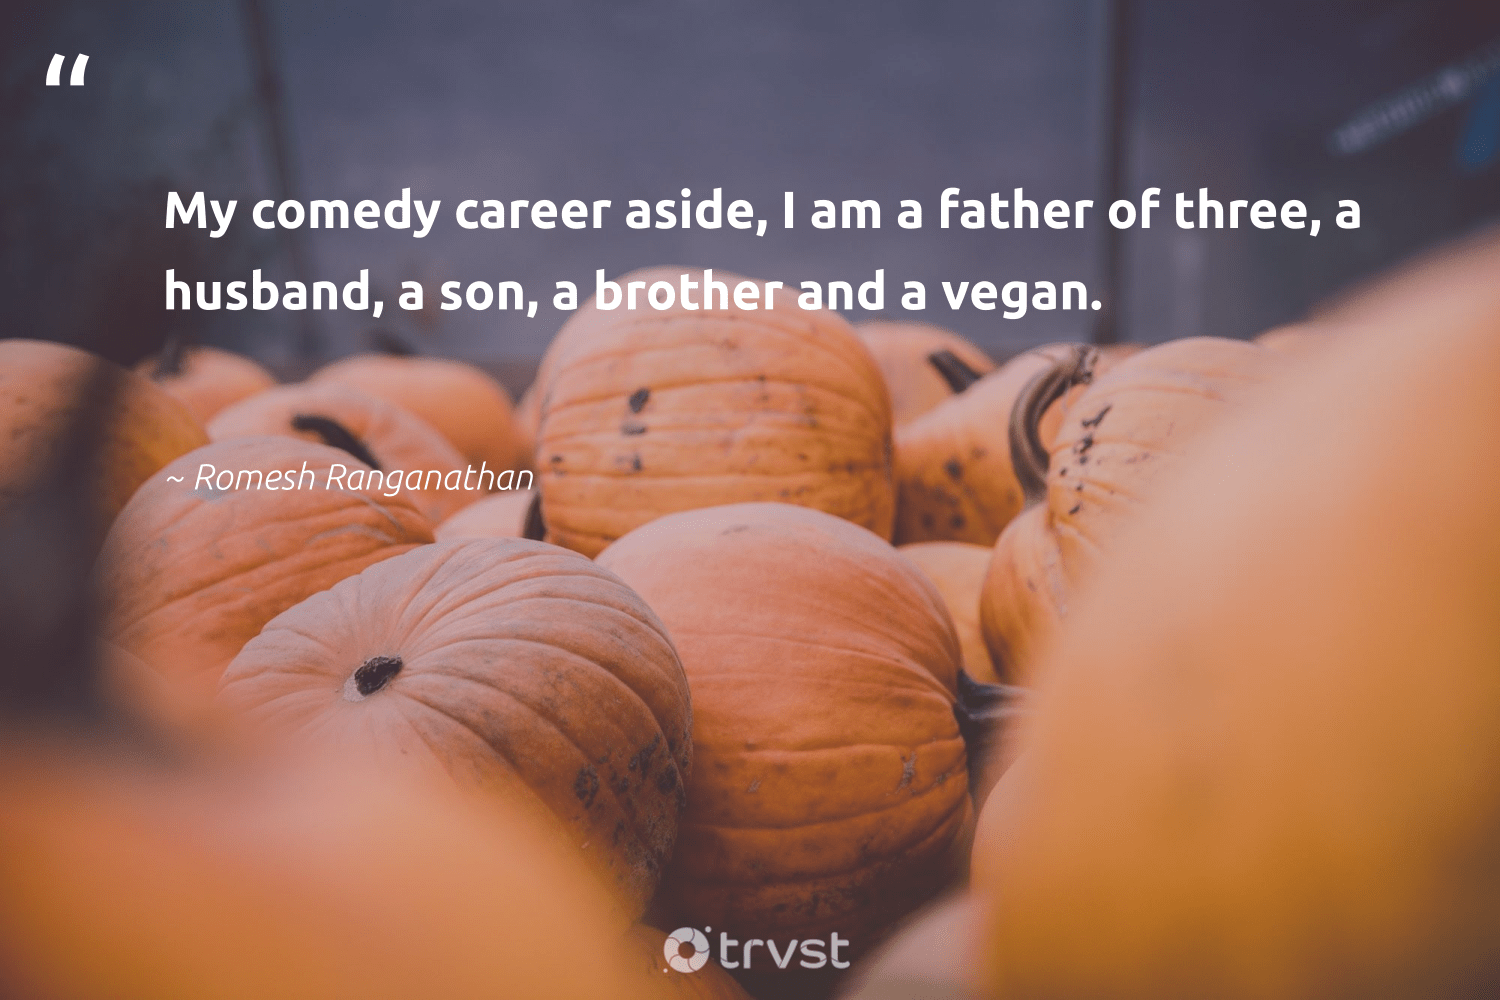 """My comedy career aside, I am a father of three, a husband, a son, a brother and a vegan.""  - Romesh Ranganathan #trvst #quotes #vegan #govegan #fashion #greenliving #impact #veganfood #green #sustainable #bethechange #whatveganseat"